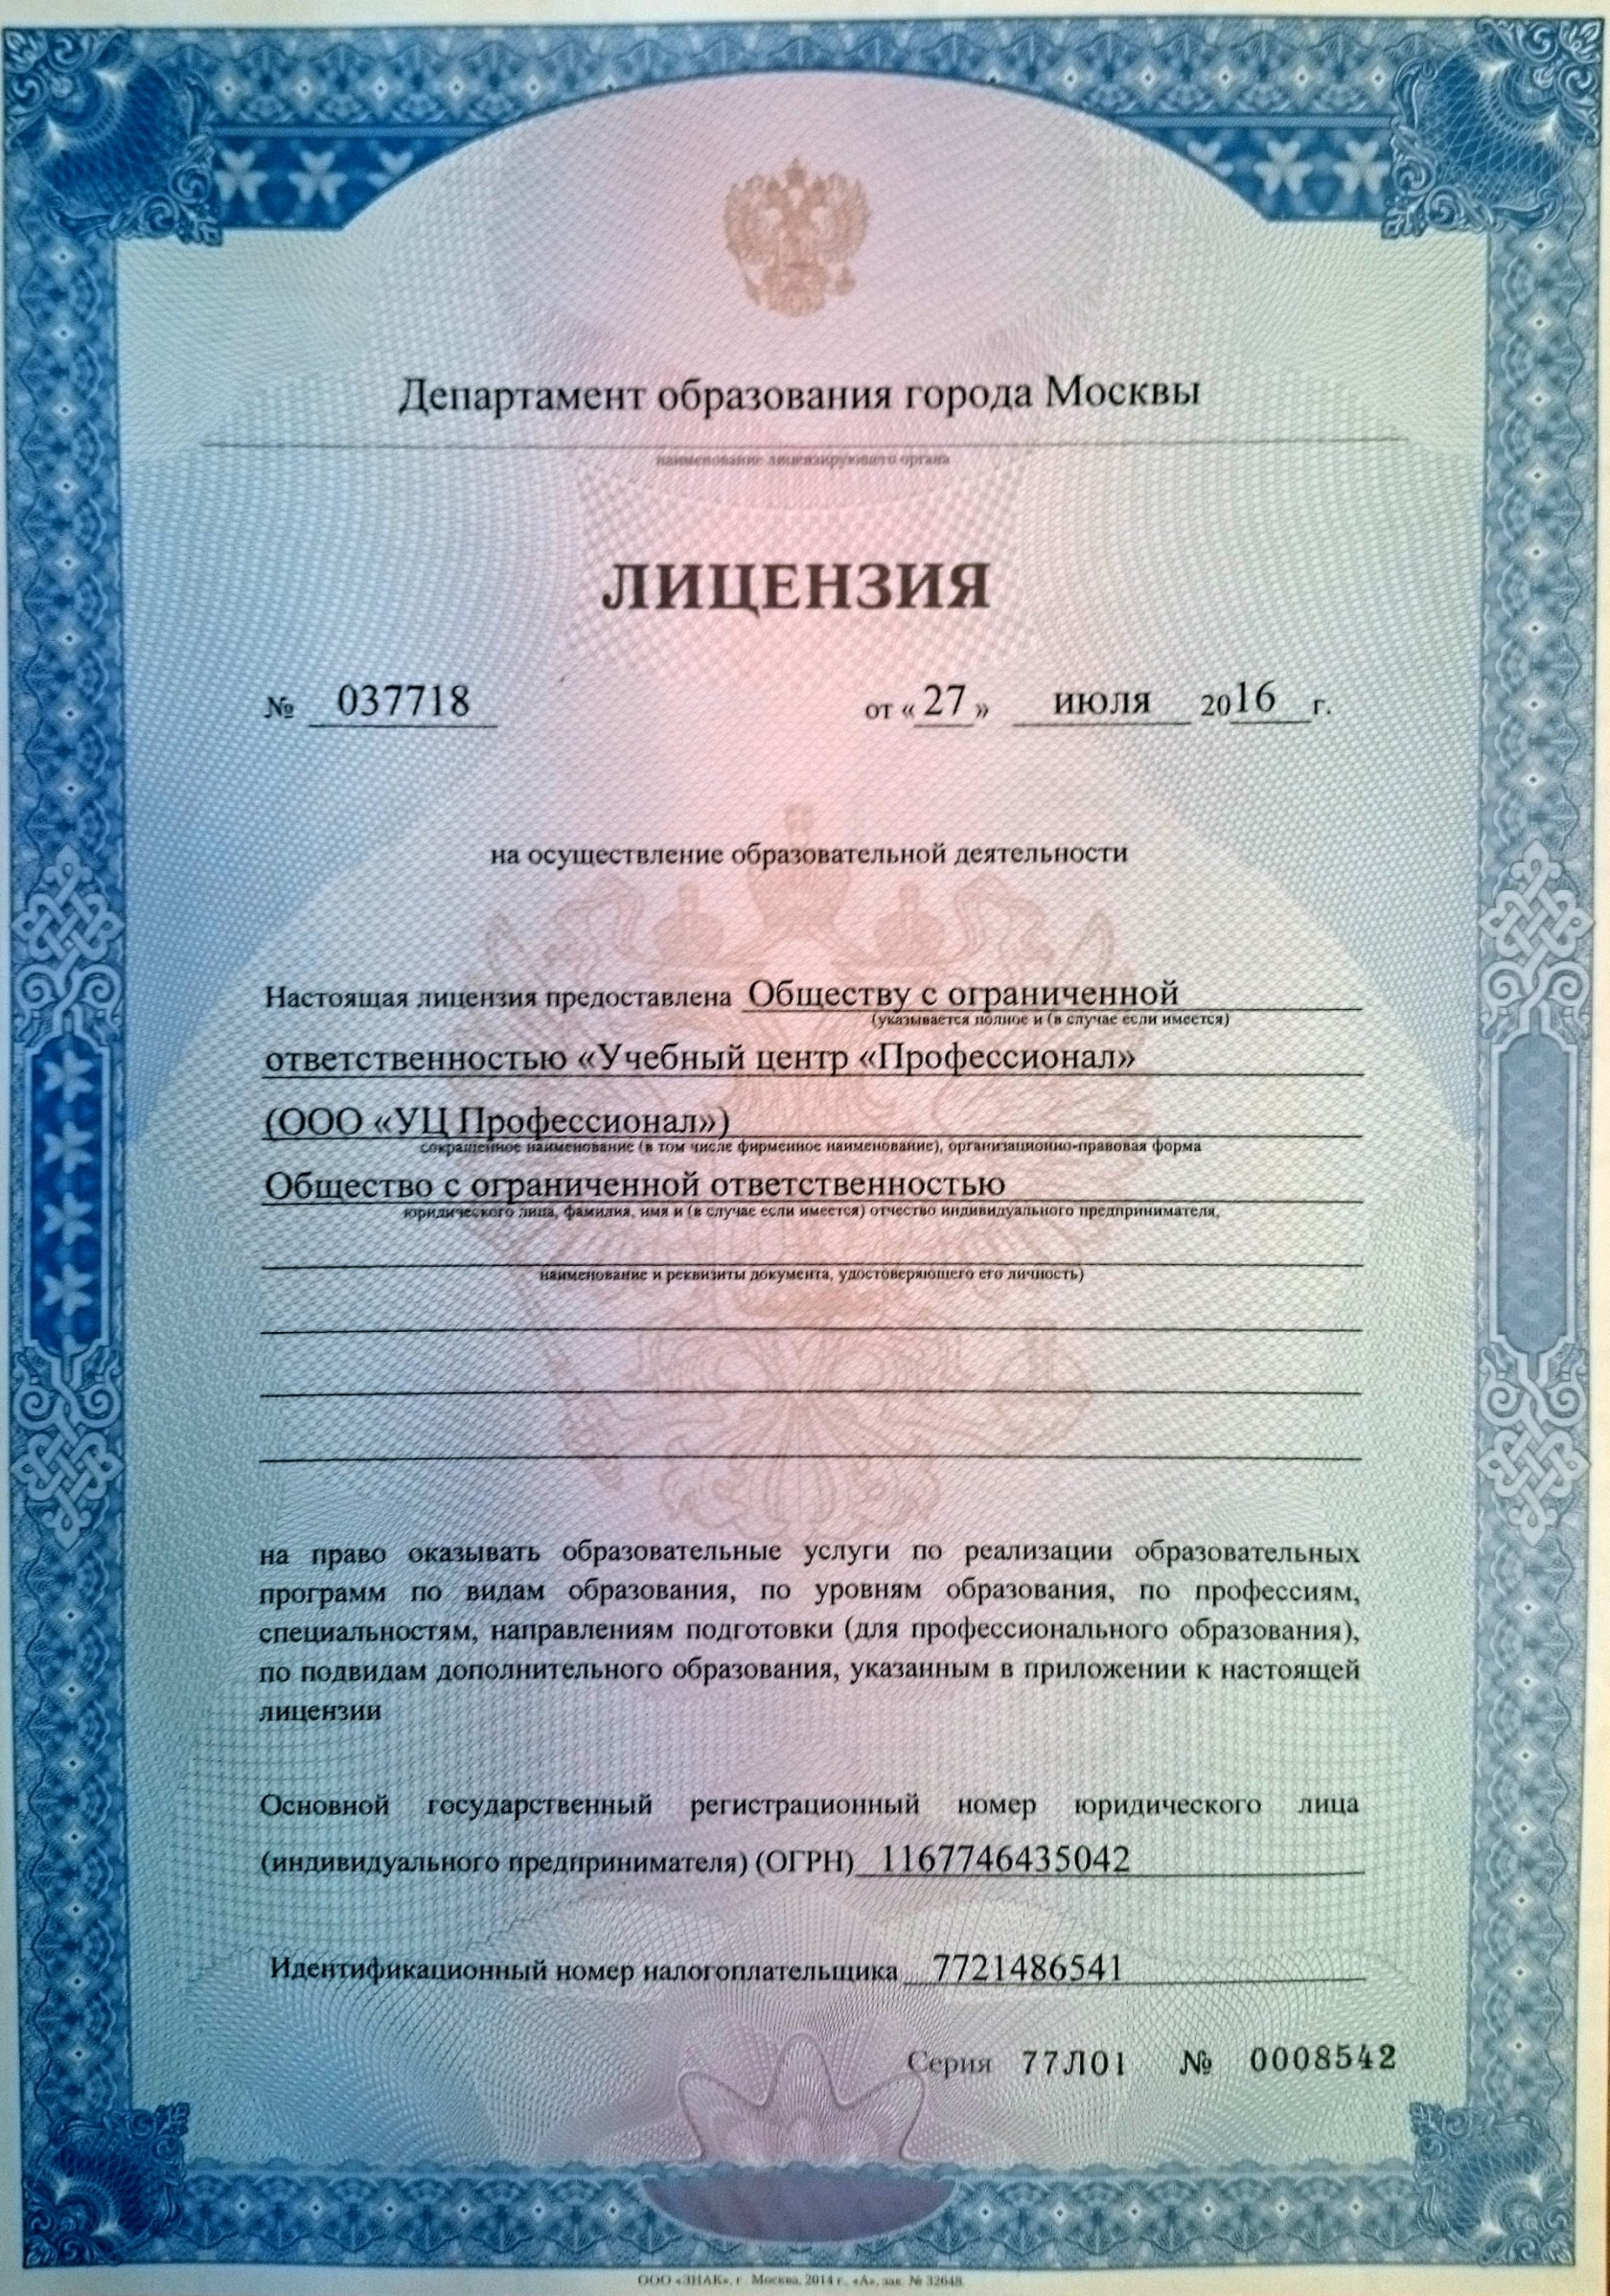 Дипломы москве дешево ява one of the best ways for дипломы москве дешево ява you to do is by studying in the college at the major you really want